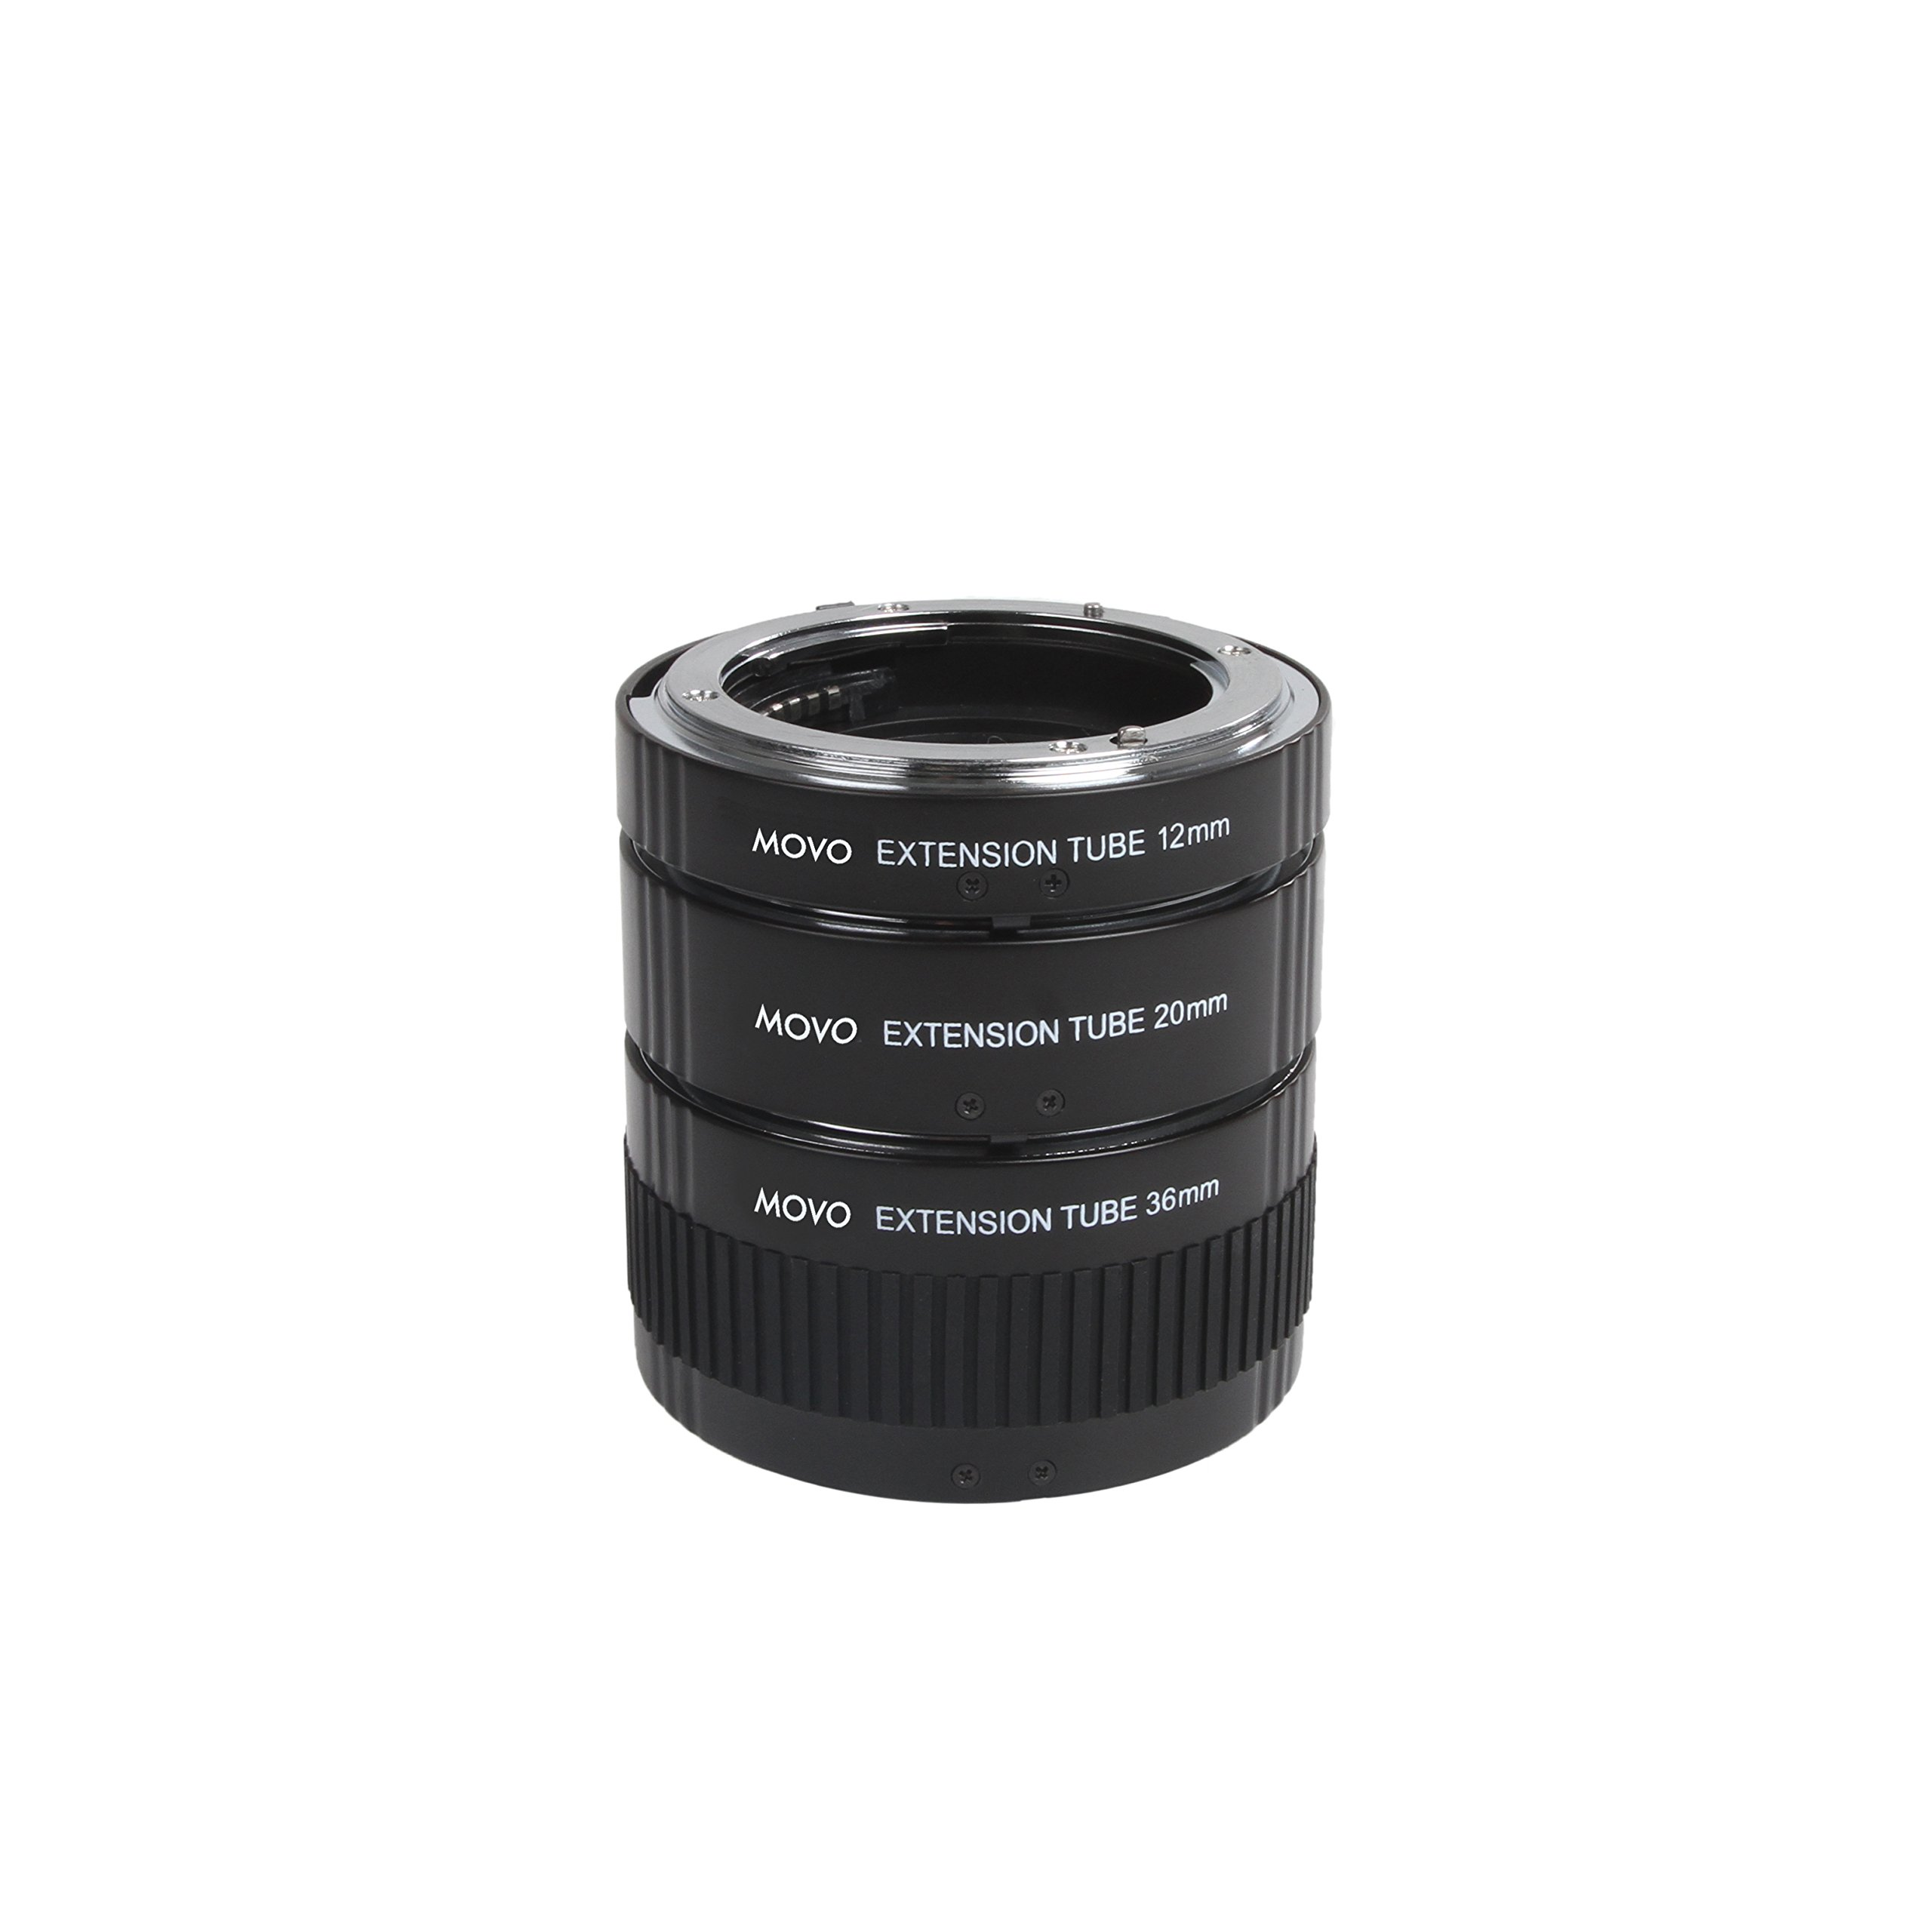 Movo Photo AF Macro Extension Tube Set for Nikon DSLR Camera with 12mm, 20mm & 36mm Tubes (Metal Mount) by Movo (Image #4)